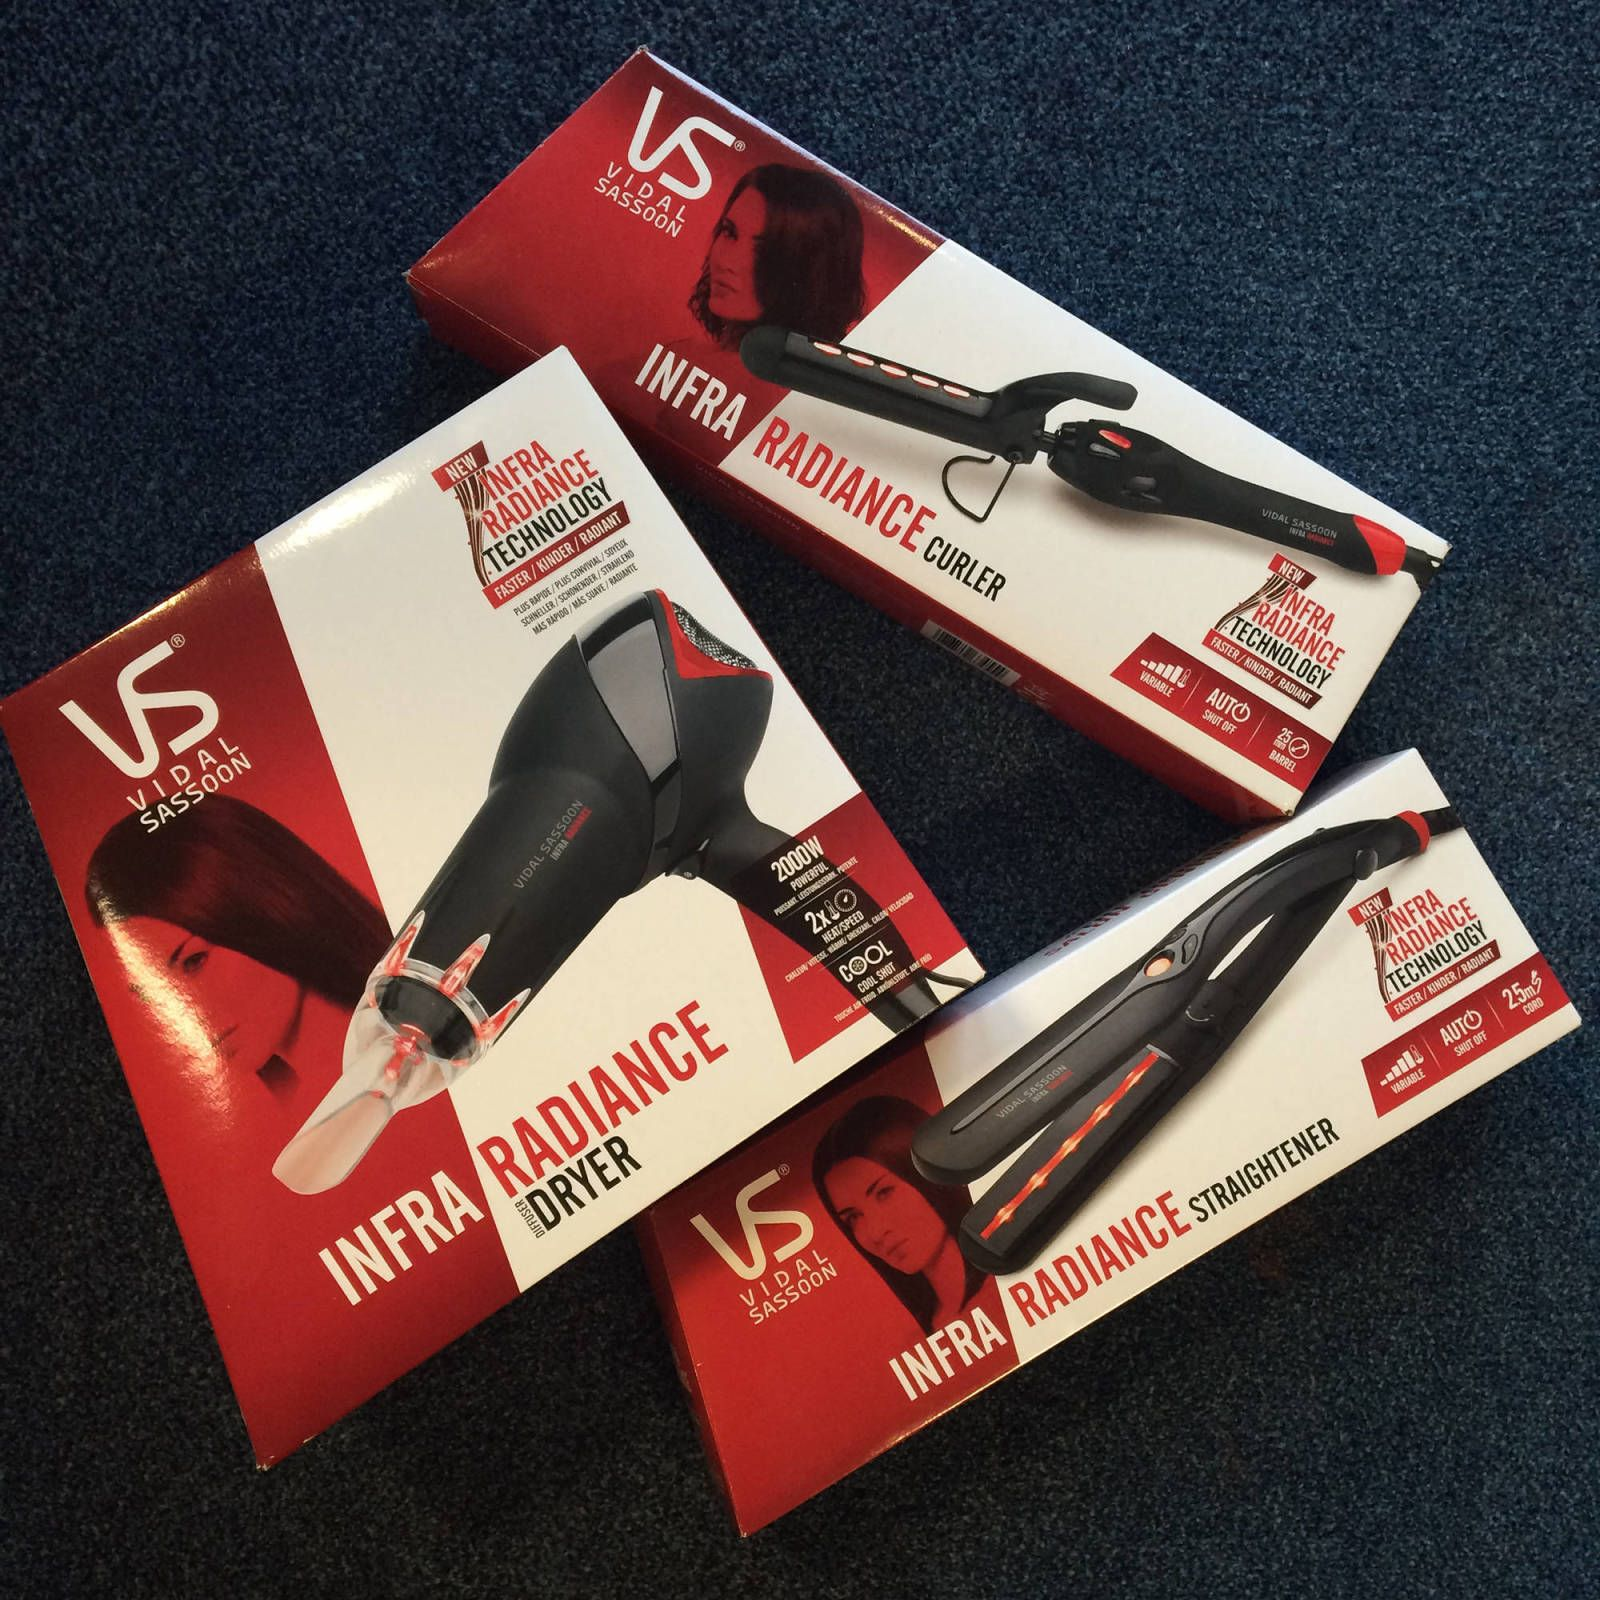 Vidal Sassoon Infra Radiance collection review